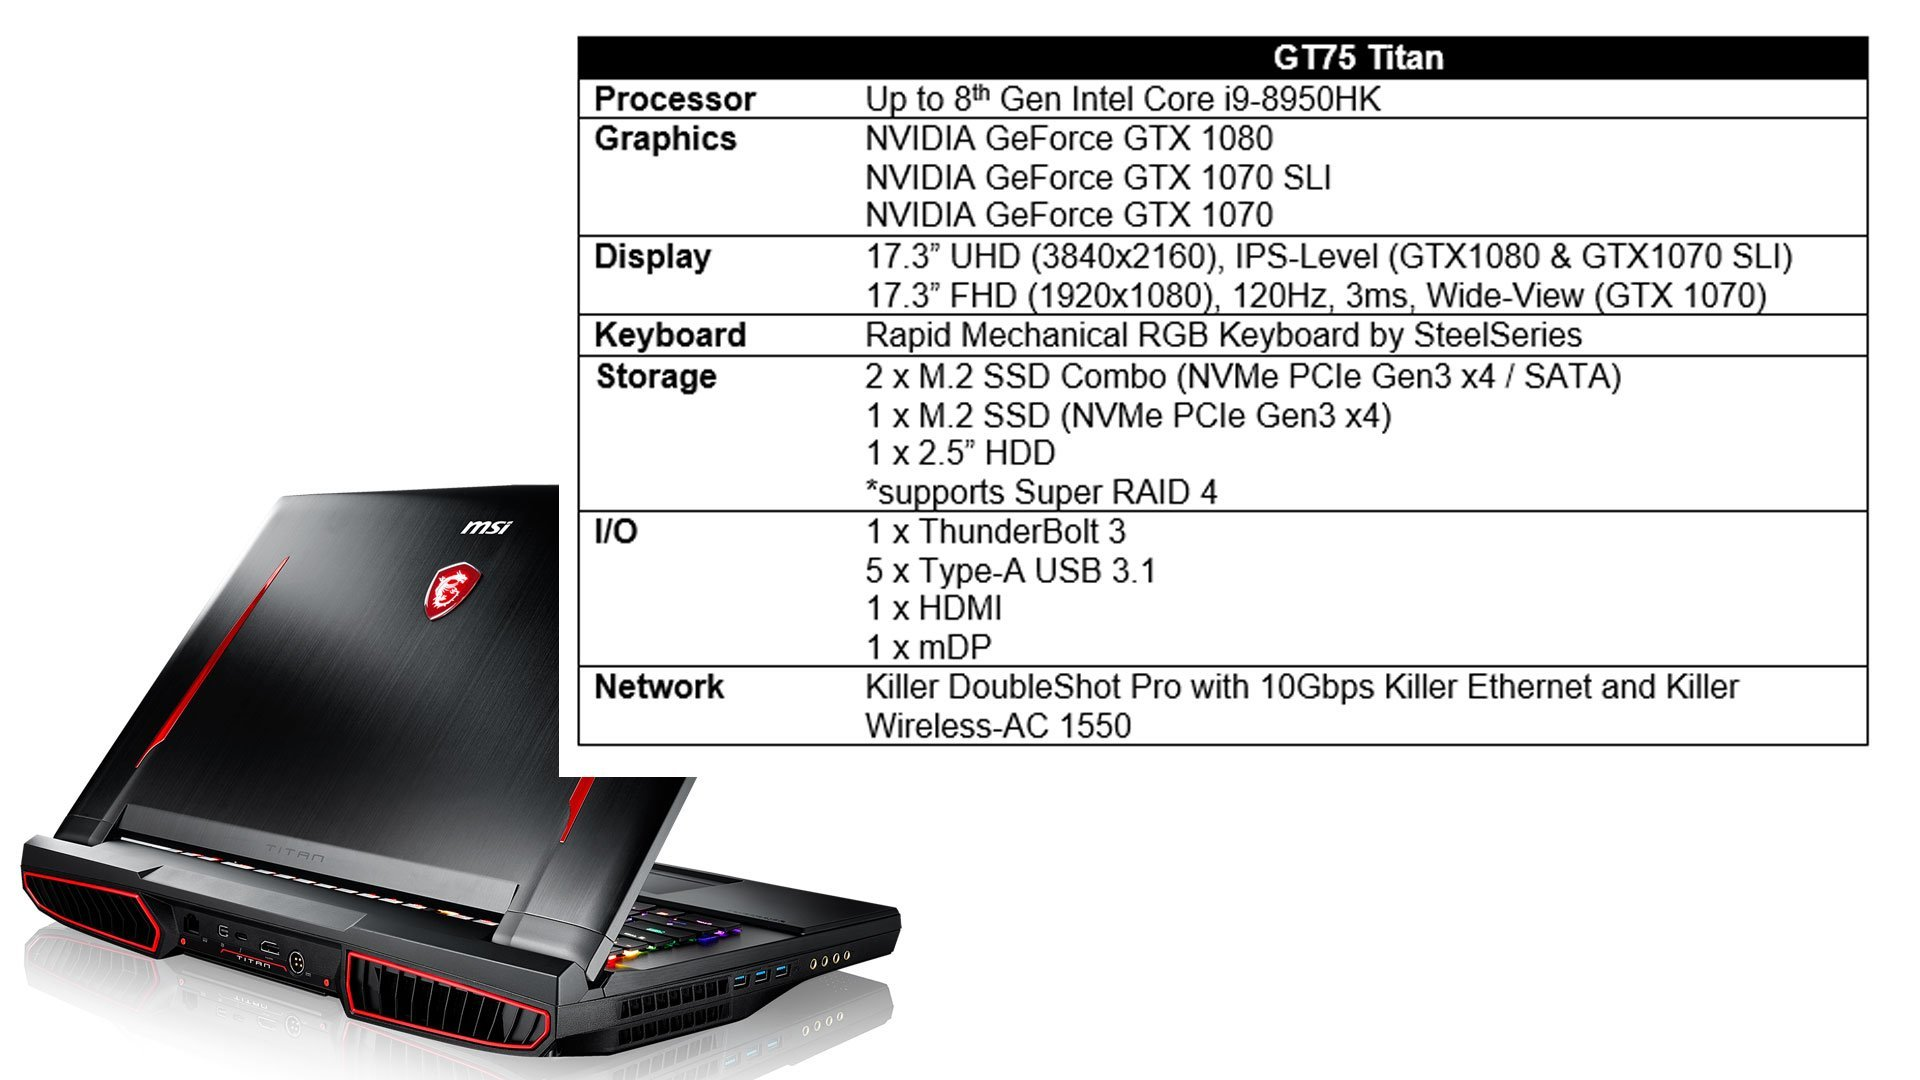 New Gaming Laptops from MSI with Intel 8th Generation Processors 27